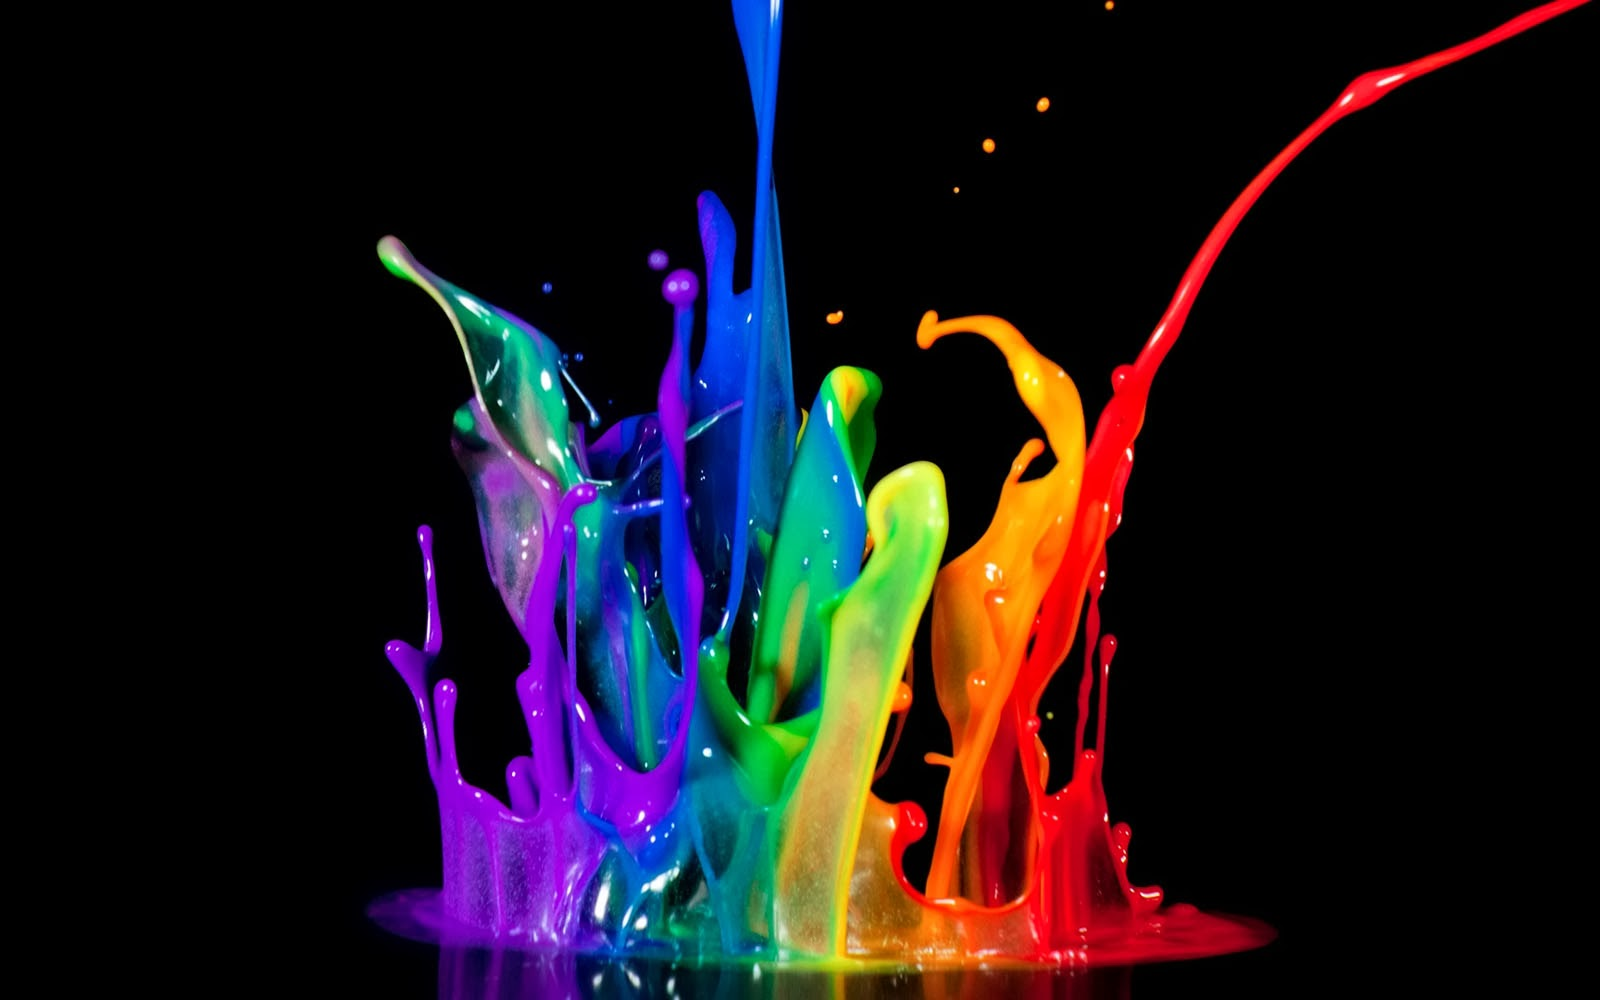 color splash wallpapers - top wallpaper desktop